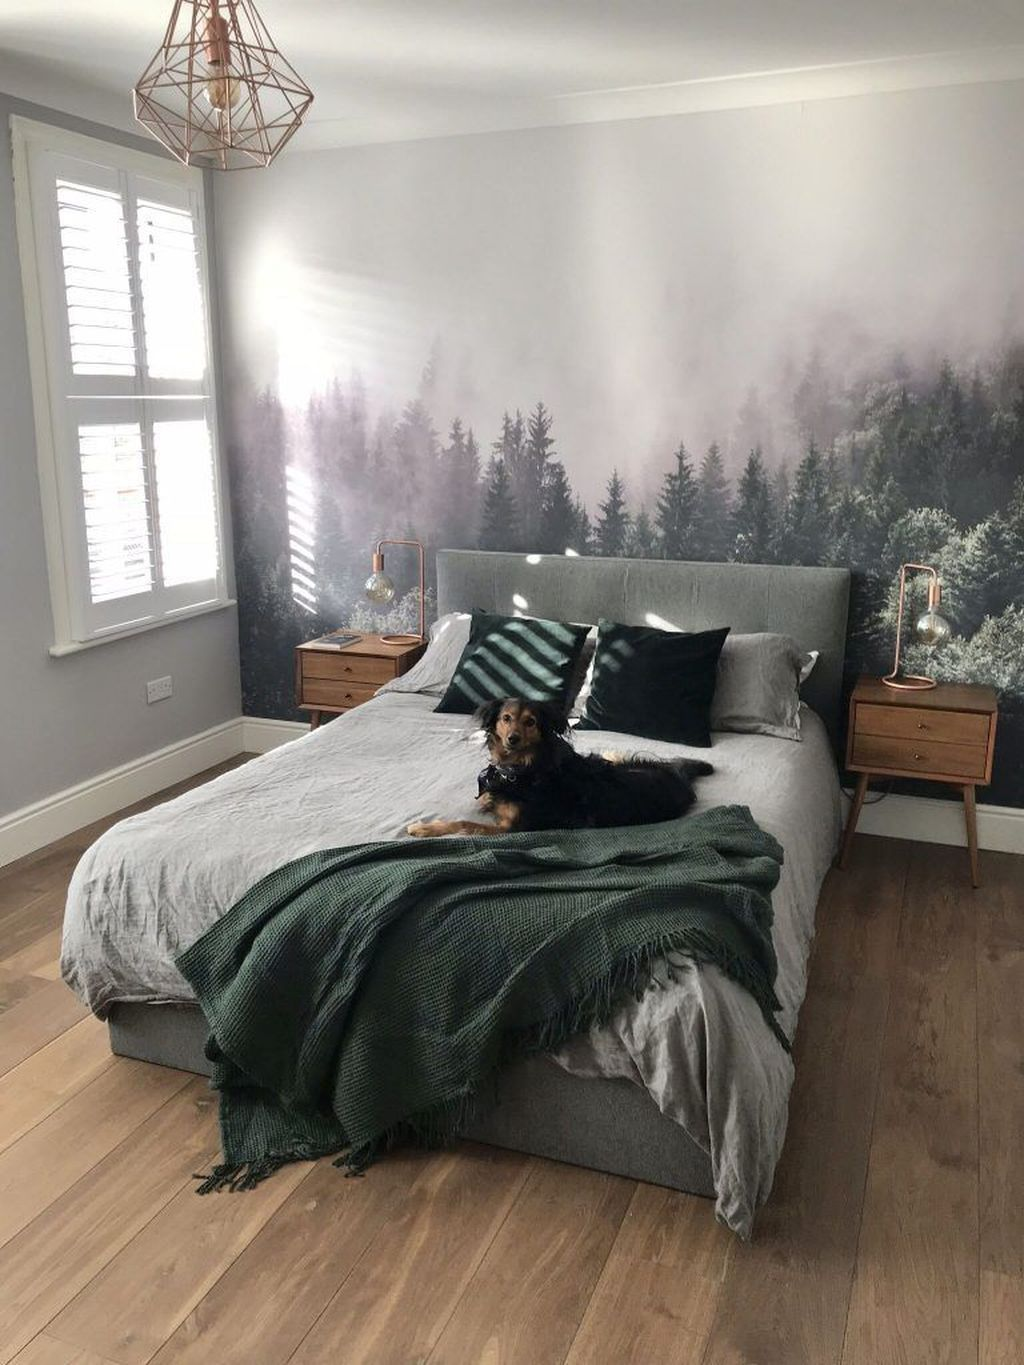 33 Awesome Bedroom Mural Wallpaper Ideas Chic Master Bedroom Master Bedroom Wallpaper Bedroom Renovation